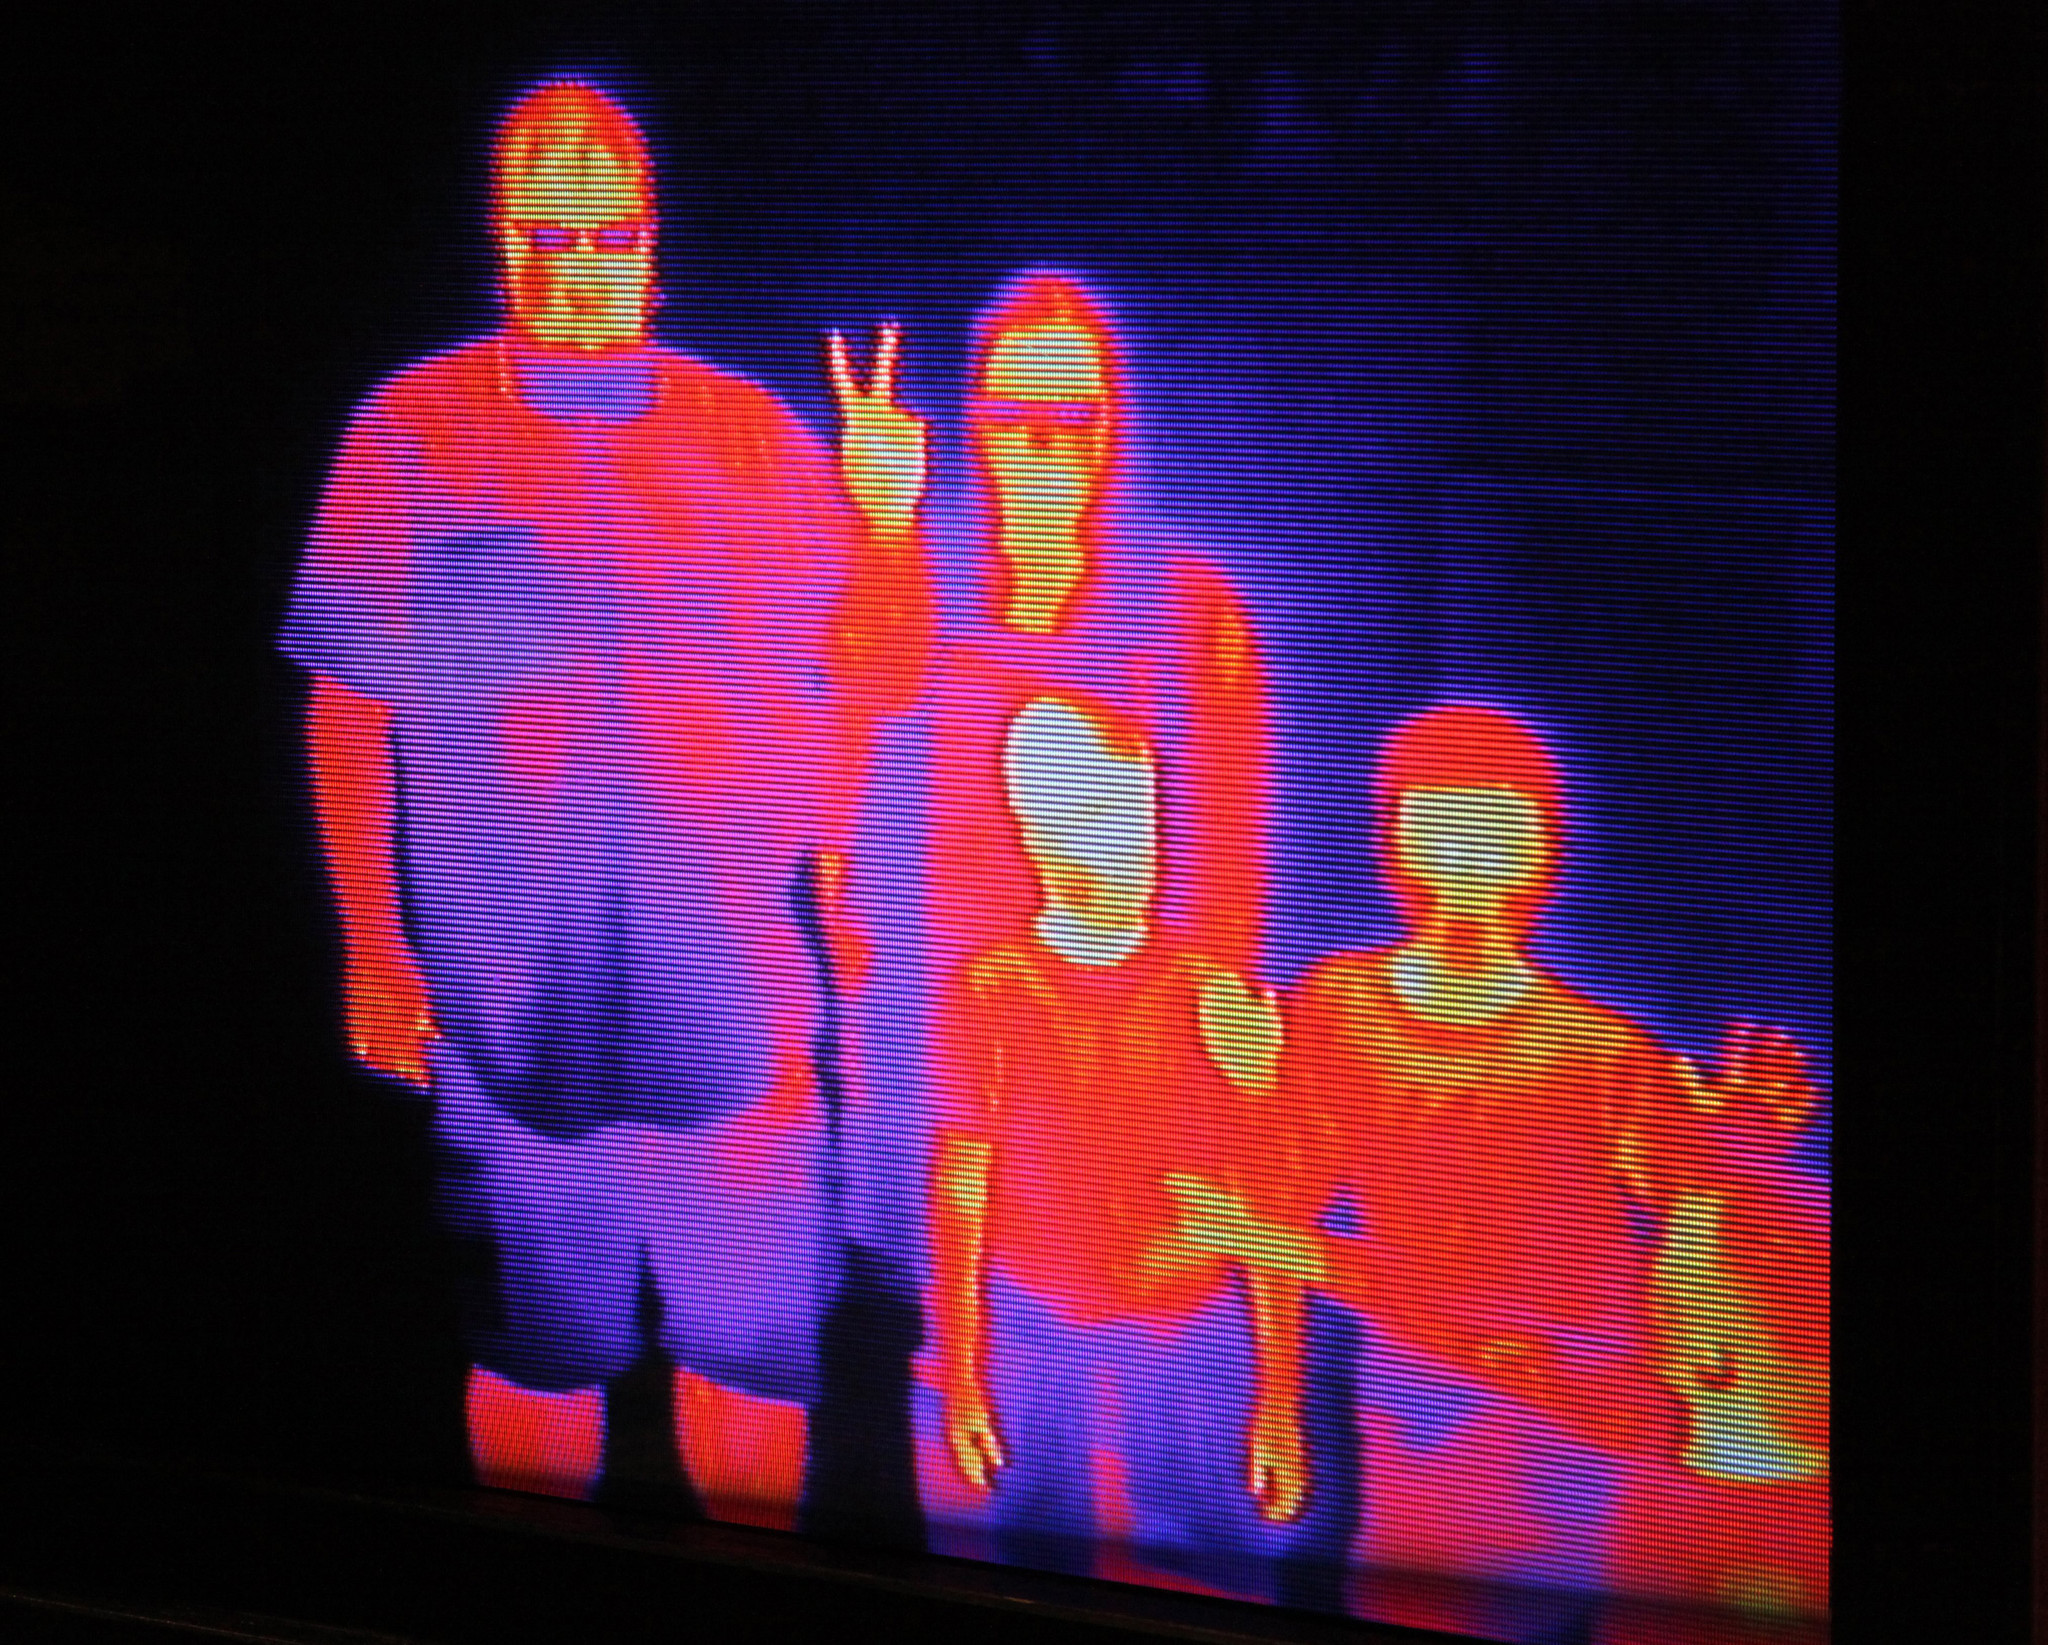 An infrared camera shows family members in a different light at the Oregon Museum of Science and Industry in Portland, Oregon.